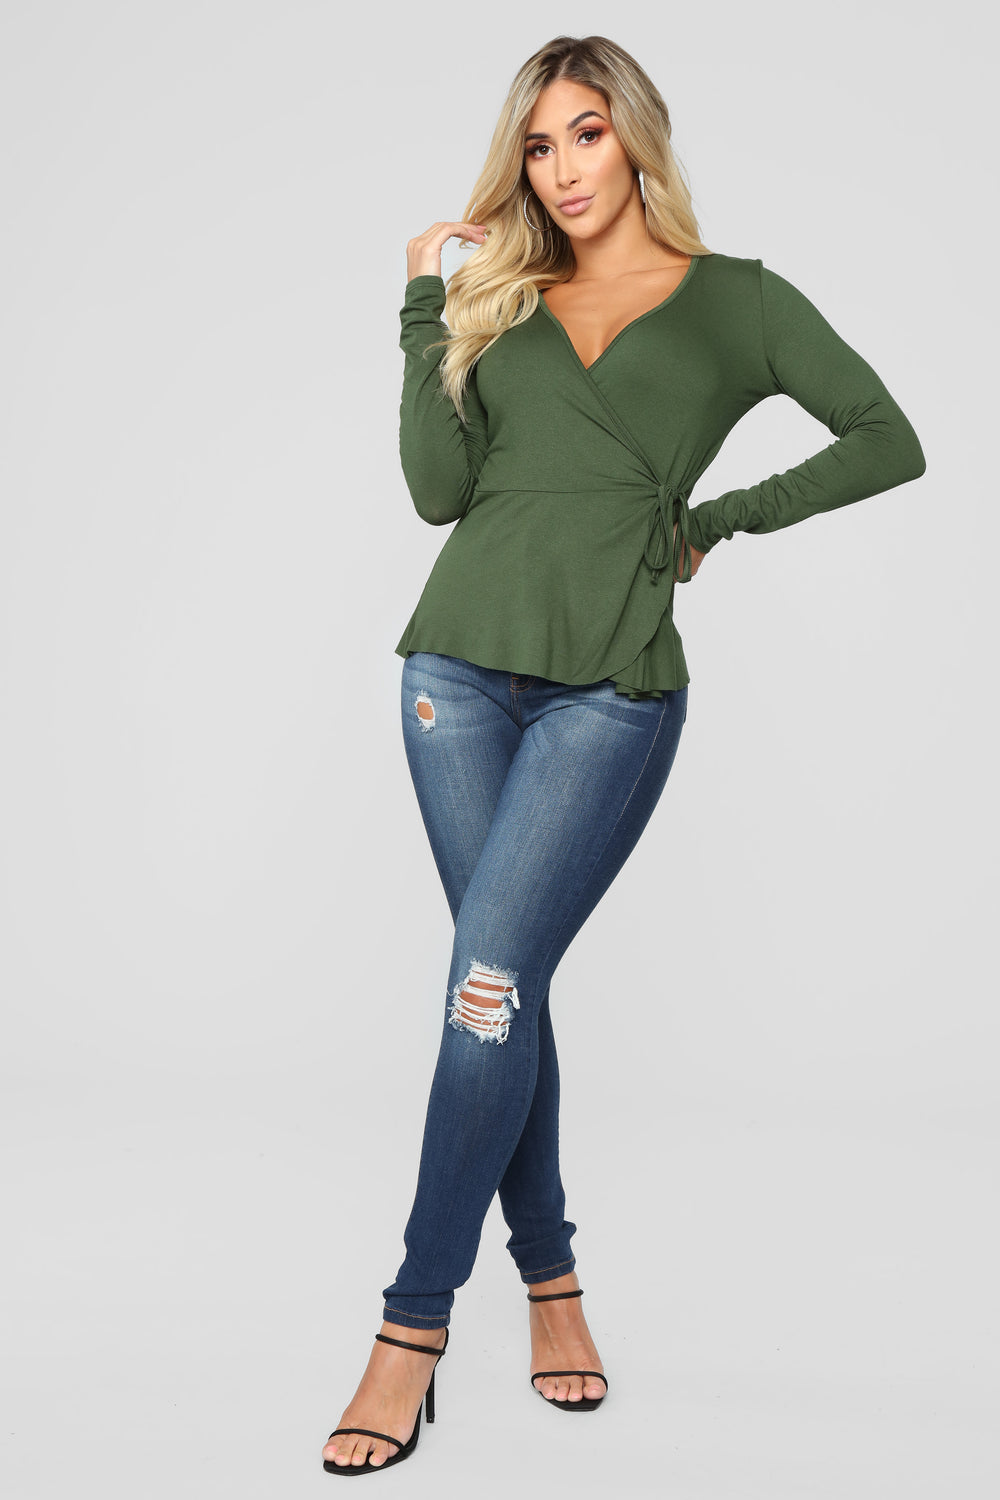 So Classic Long Sleeve Wrap Top - Olive